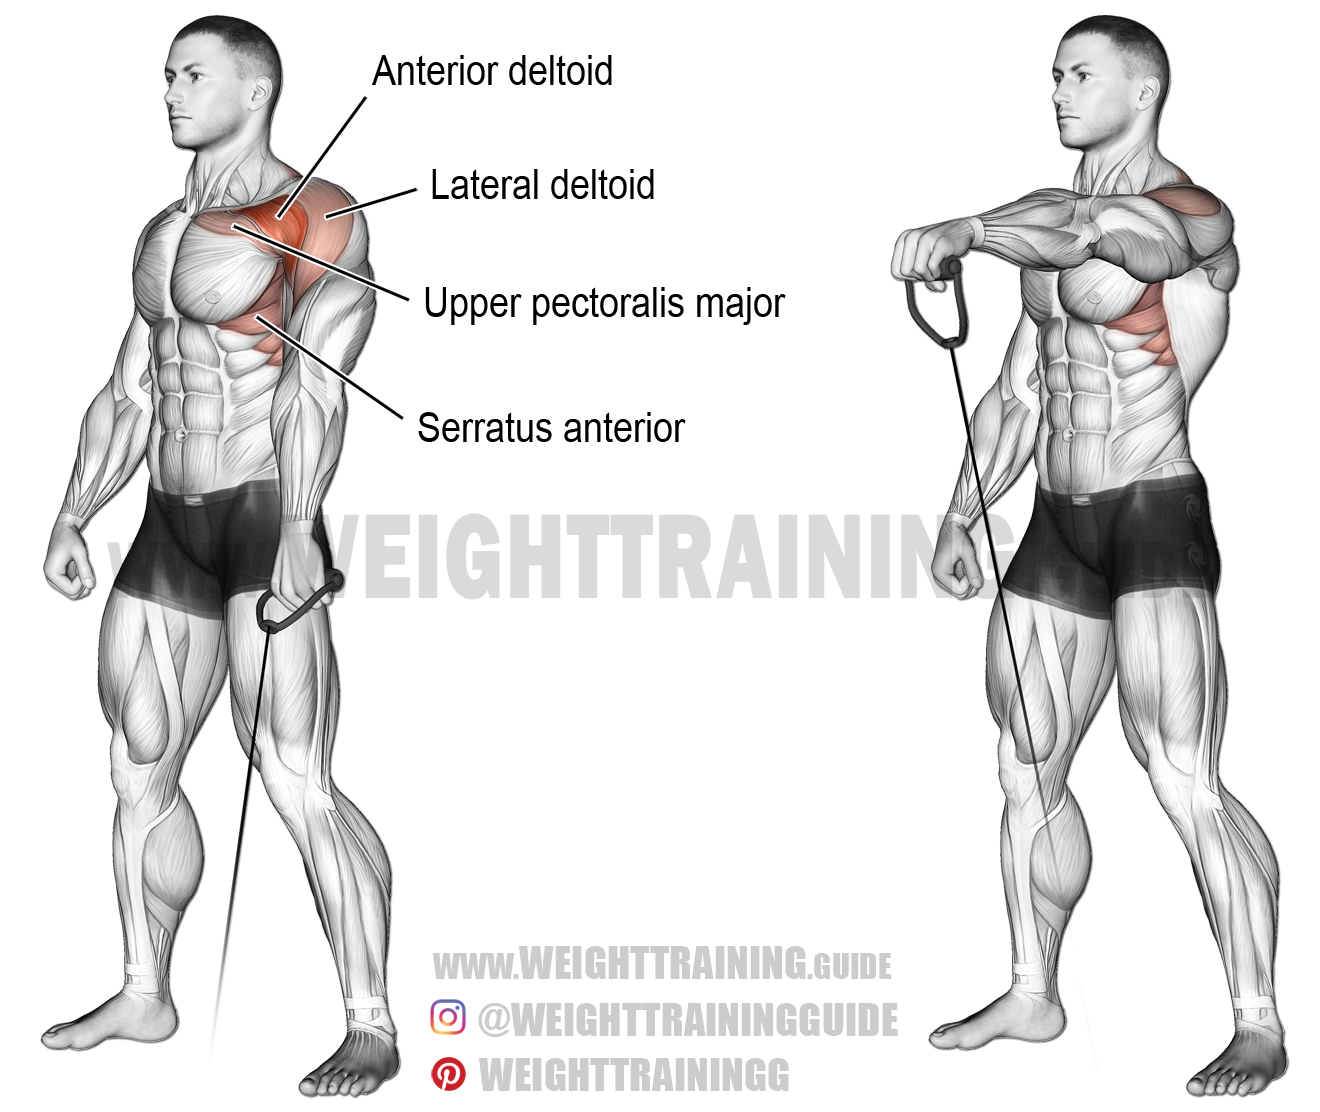 Cable one-arm front raise exercise instructions and video